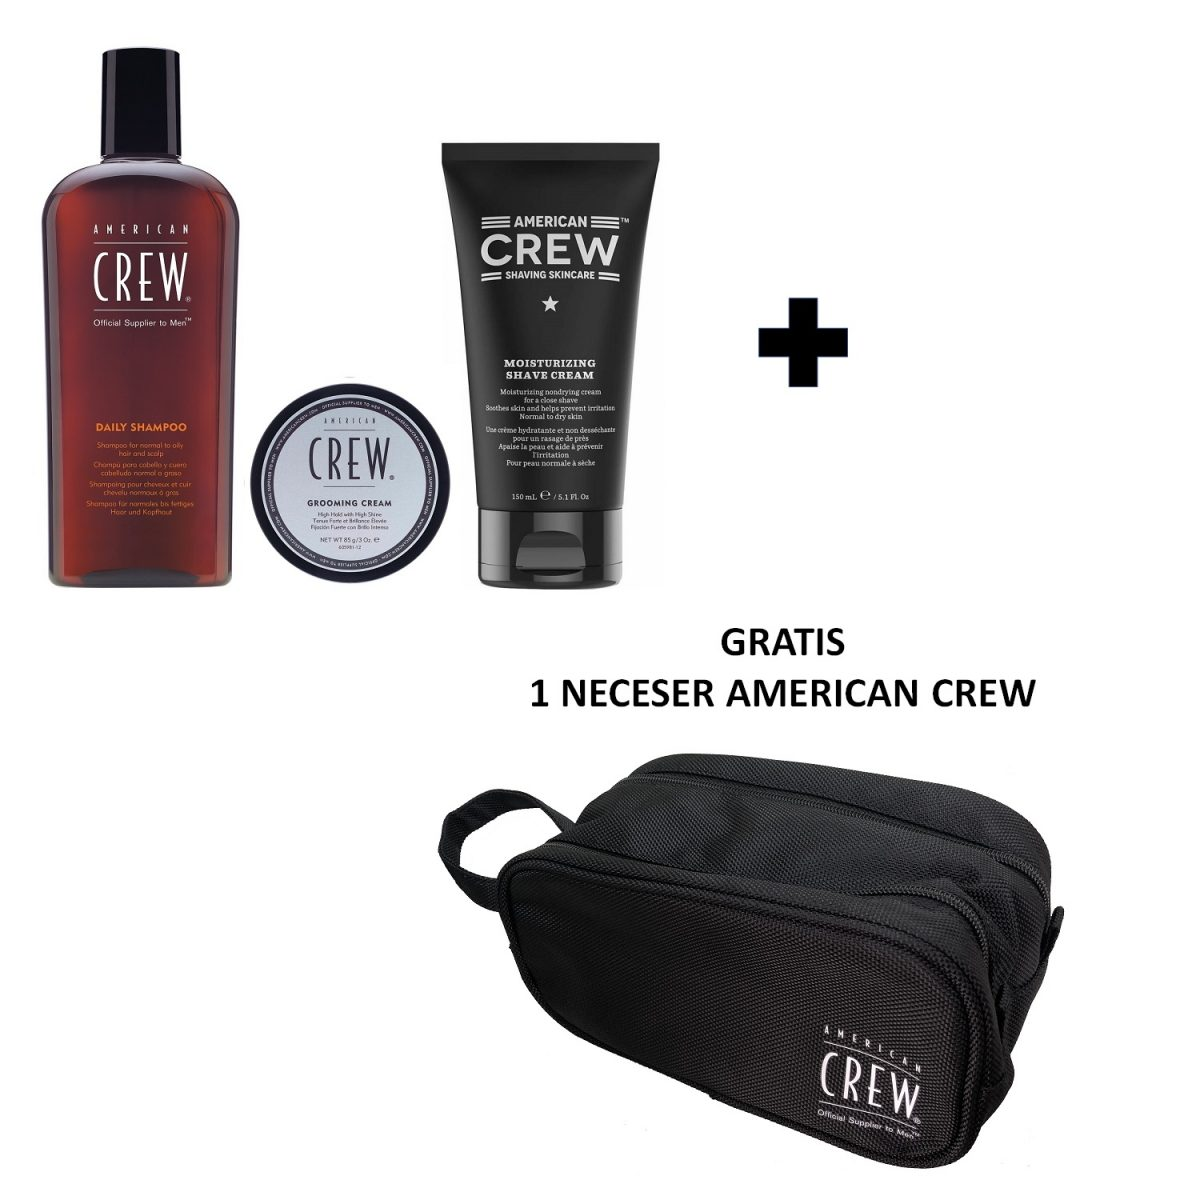 56_American-Crew-Daily-Shampoo-250ml_Grooming_Cream_85gr_Moisturizing_Shave_Cream_150ml_Neceser